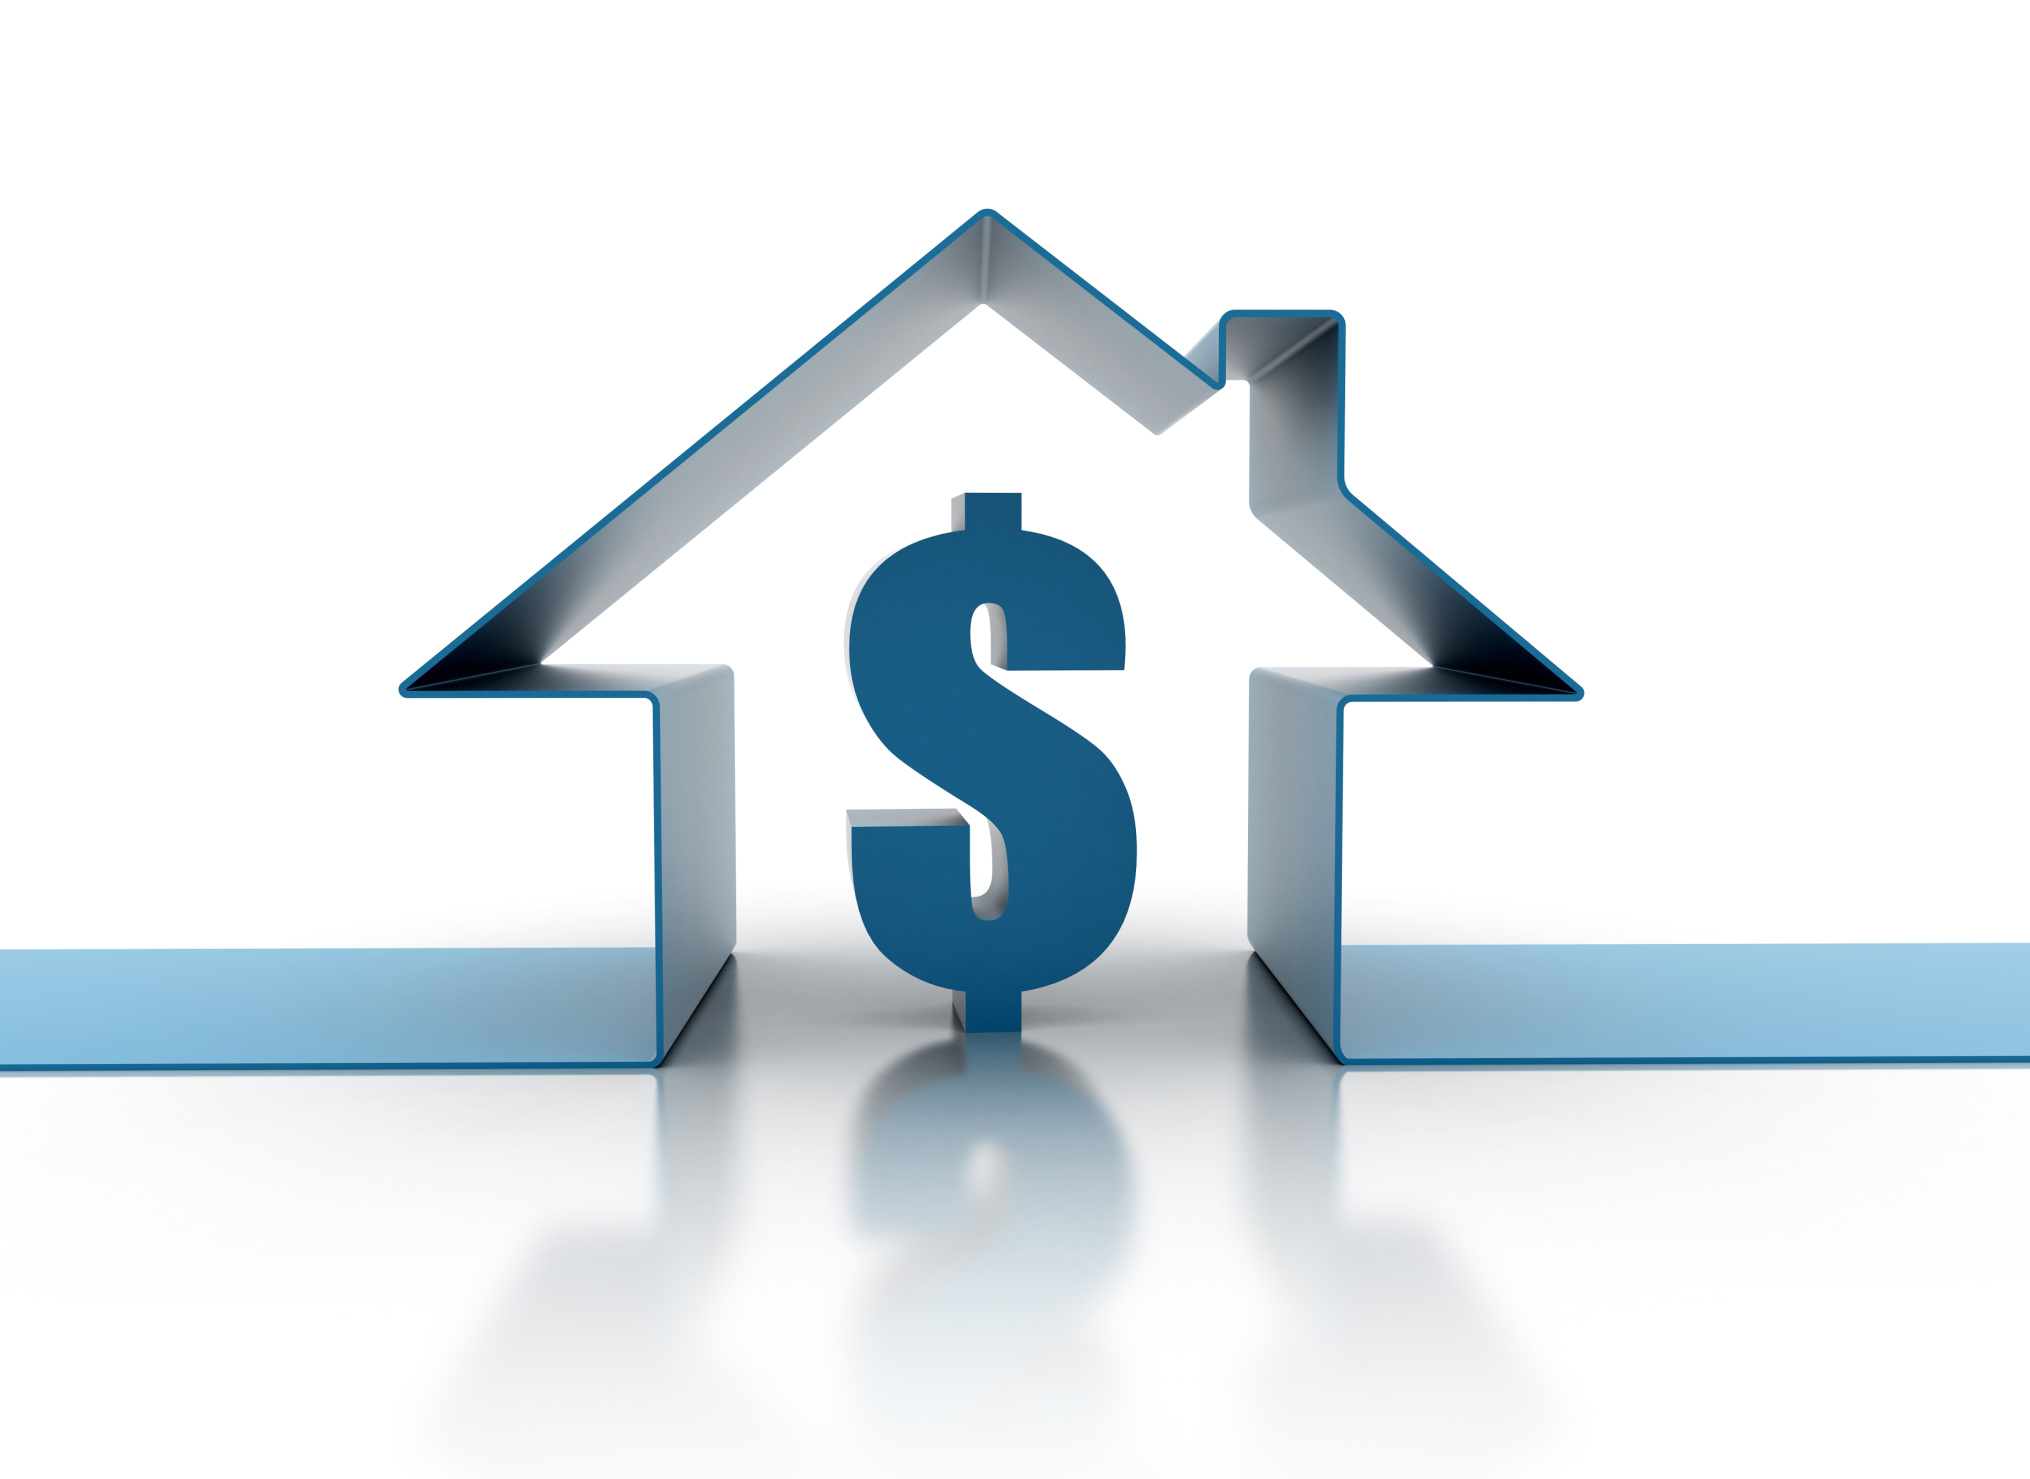 Real estate clipart property investment. Helpful advice for investing